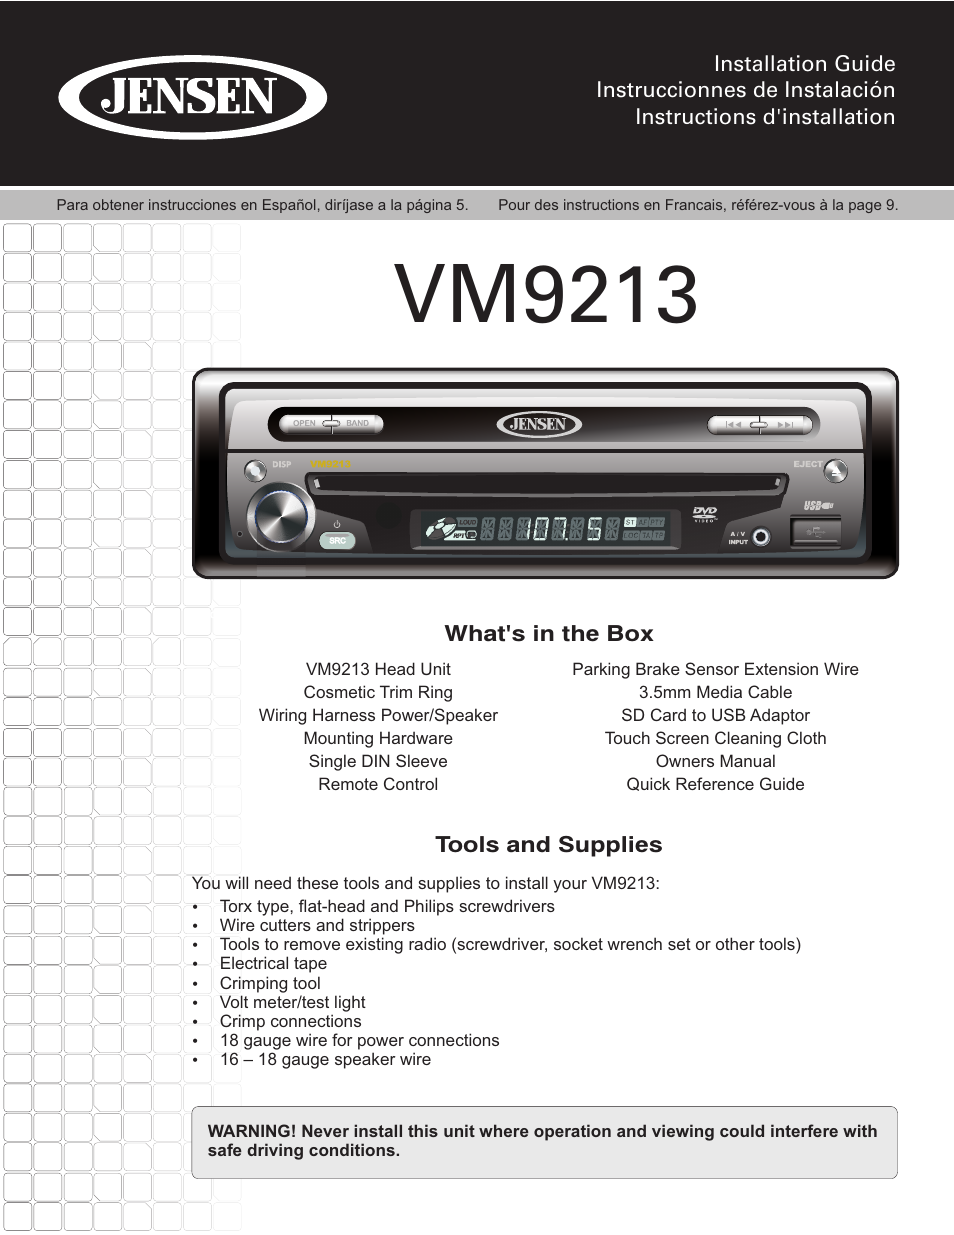 Jensen Vm9213 Wiring Diagram Experience Of Dvd Car Stereo User Manual 12 Pages Rh Manualsdir Com Radio